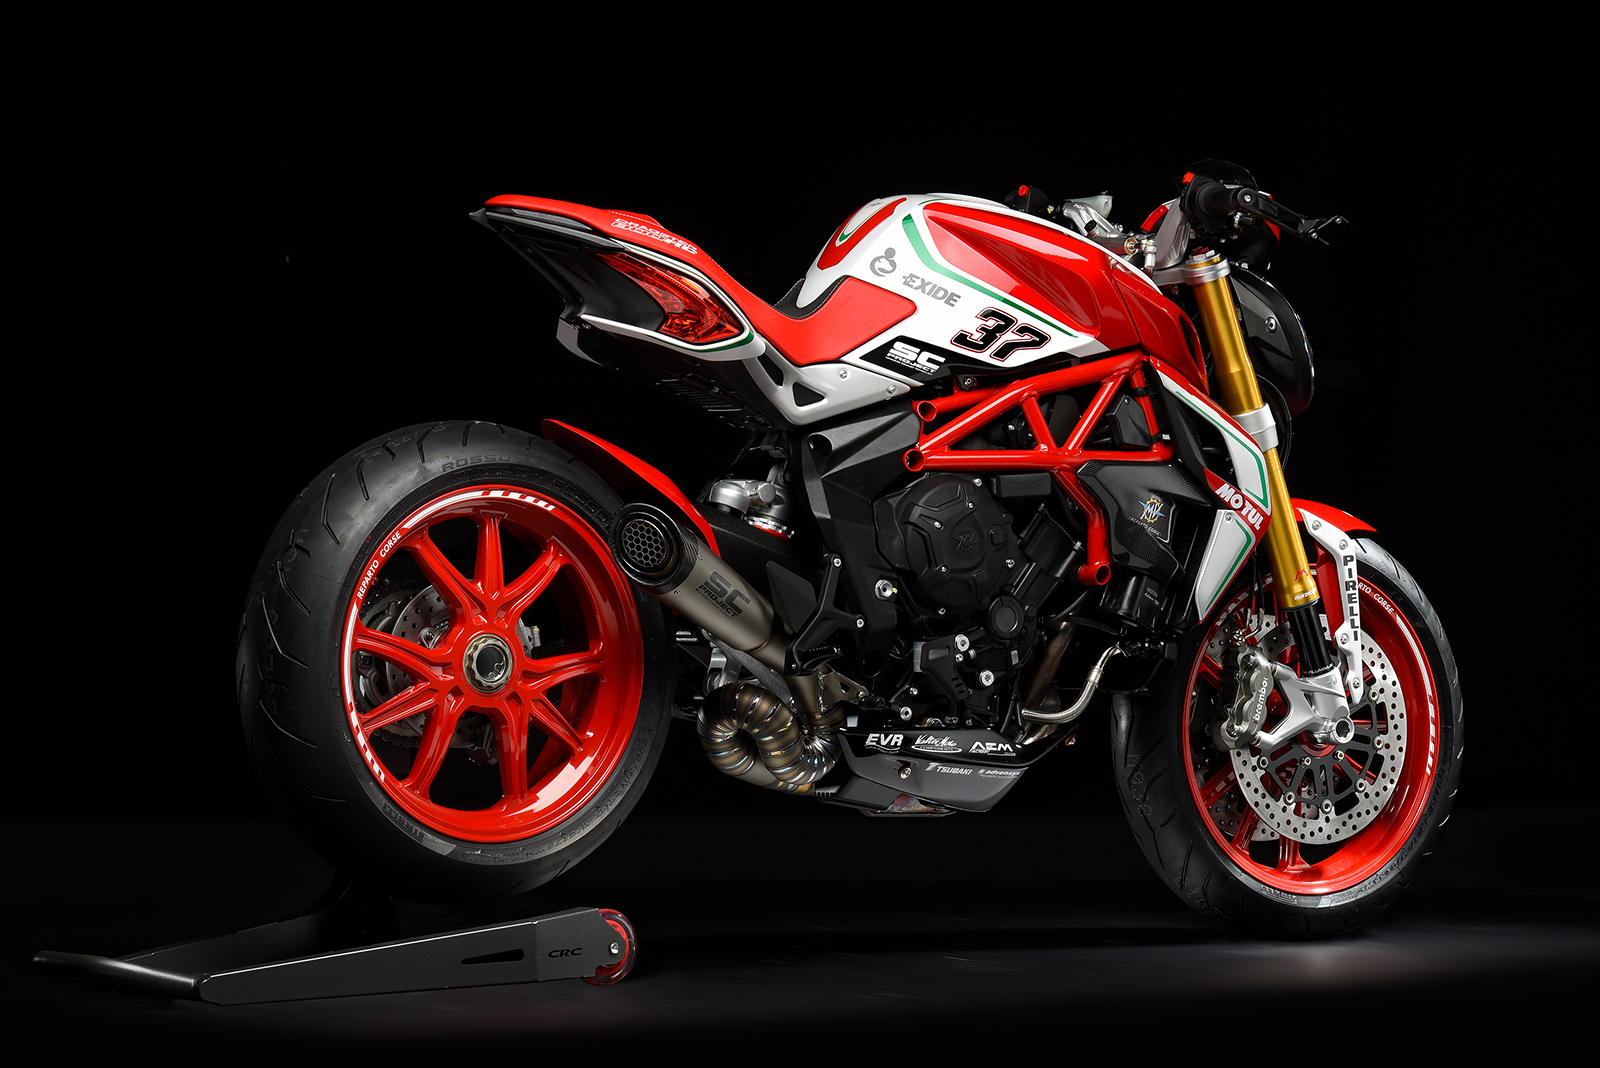 2019 Mv Augusta Dragster 800 Rr Rc Motorcycle Uae S Prices